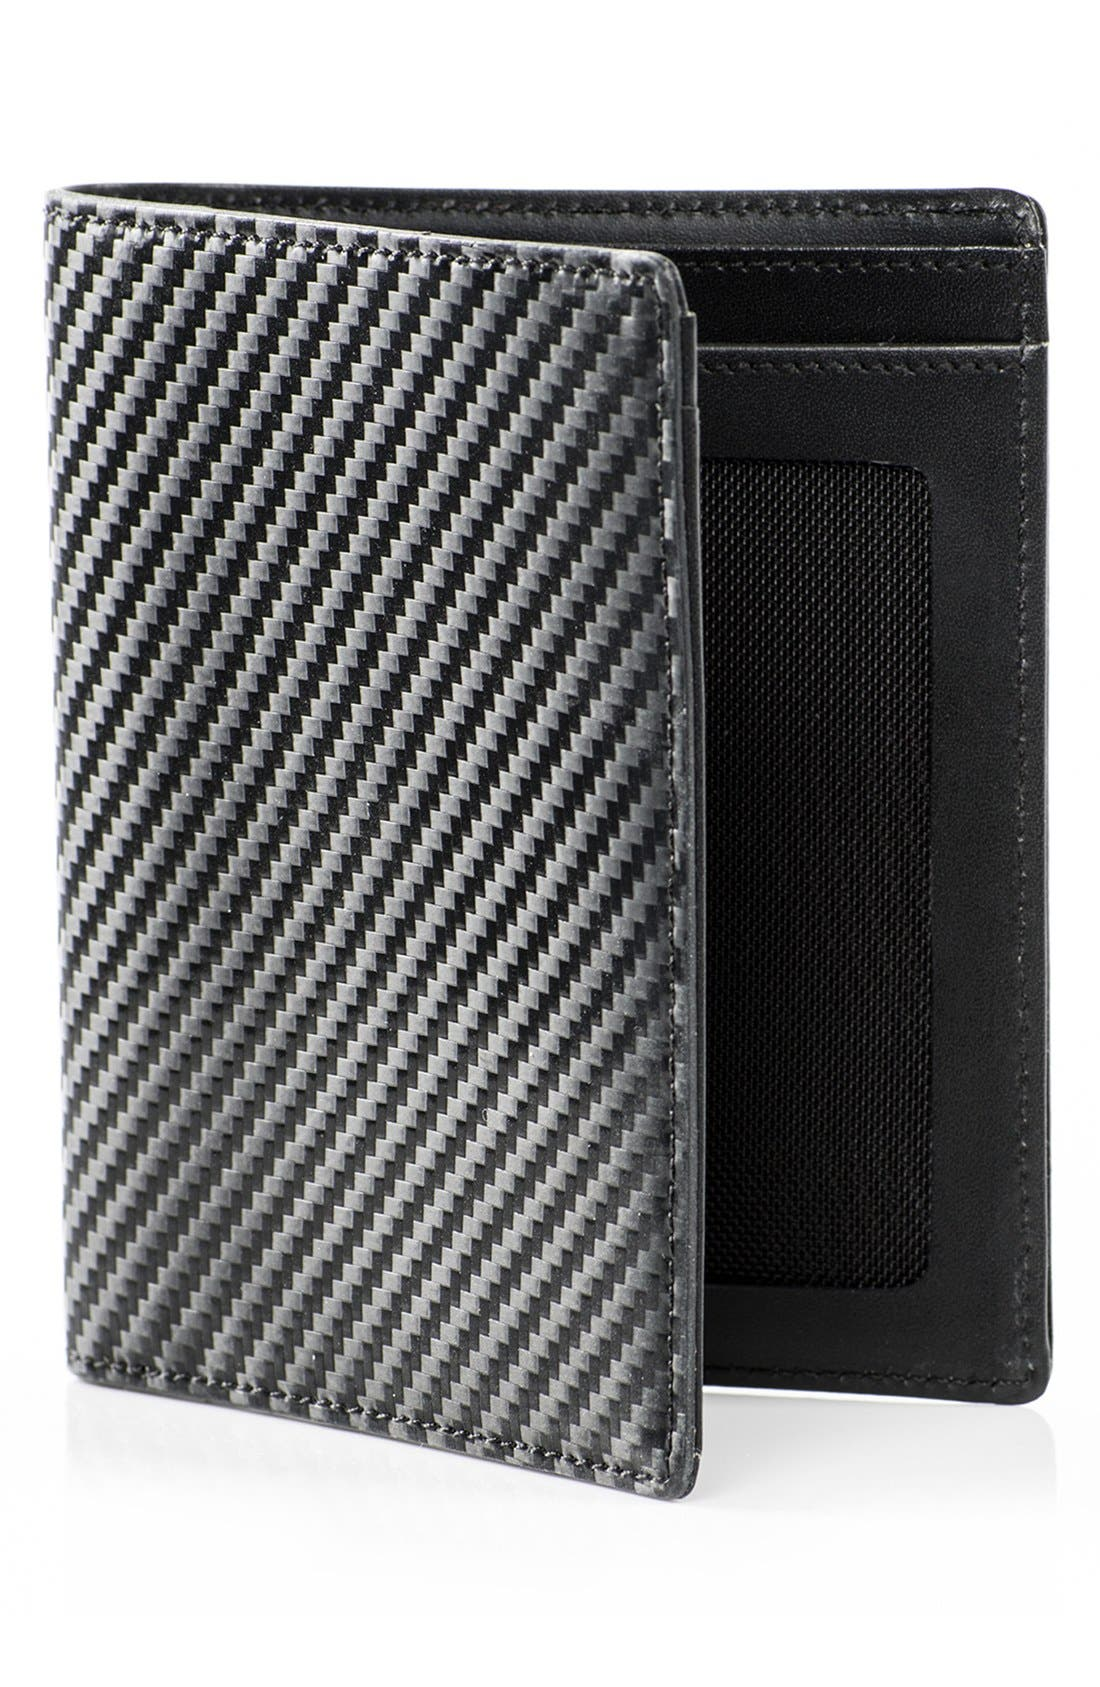 WÜRKIN STIFFS Würkin Stiffs Leather RFID Wallet